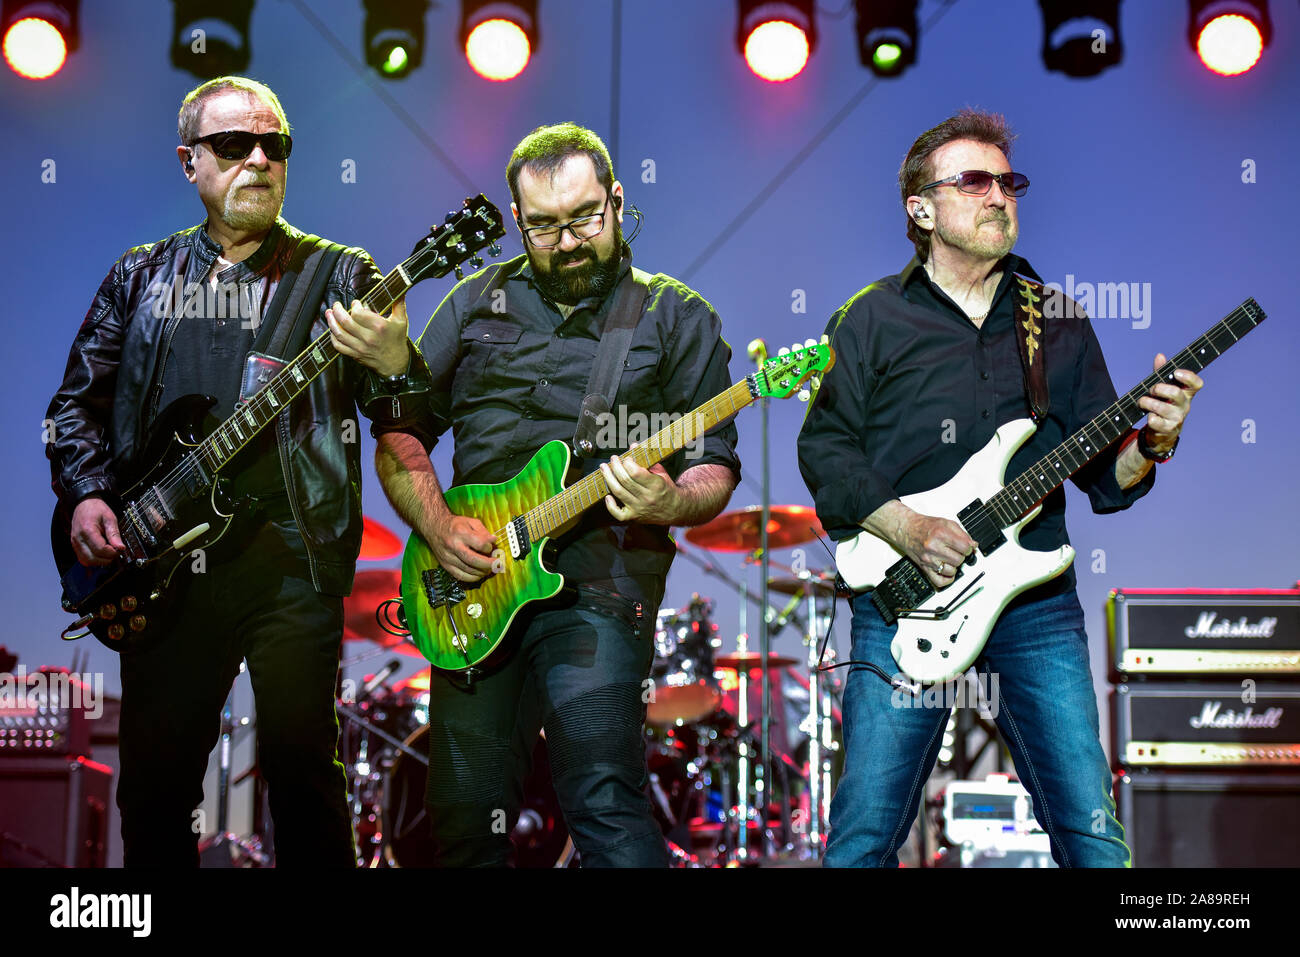 July 4, 2019, Moapa Nevada, Blue Oyster Cult on stage at the Moapa Event Center In Moapa, Nevada. Stock Photo